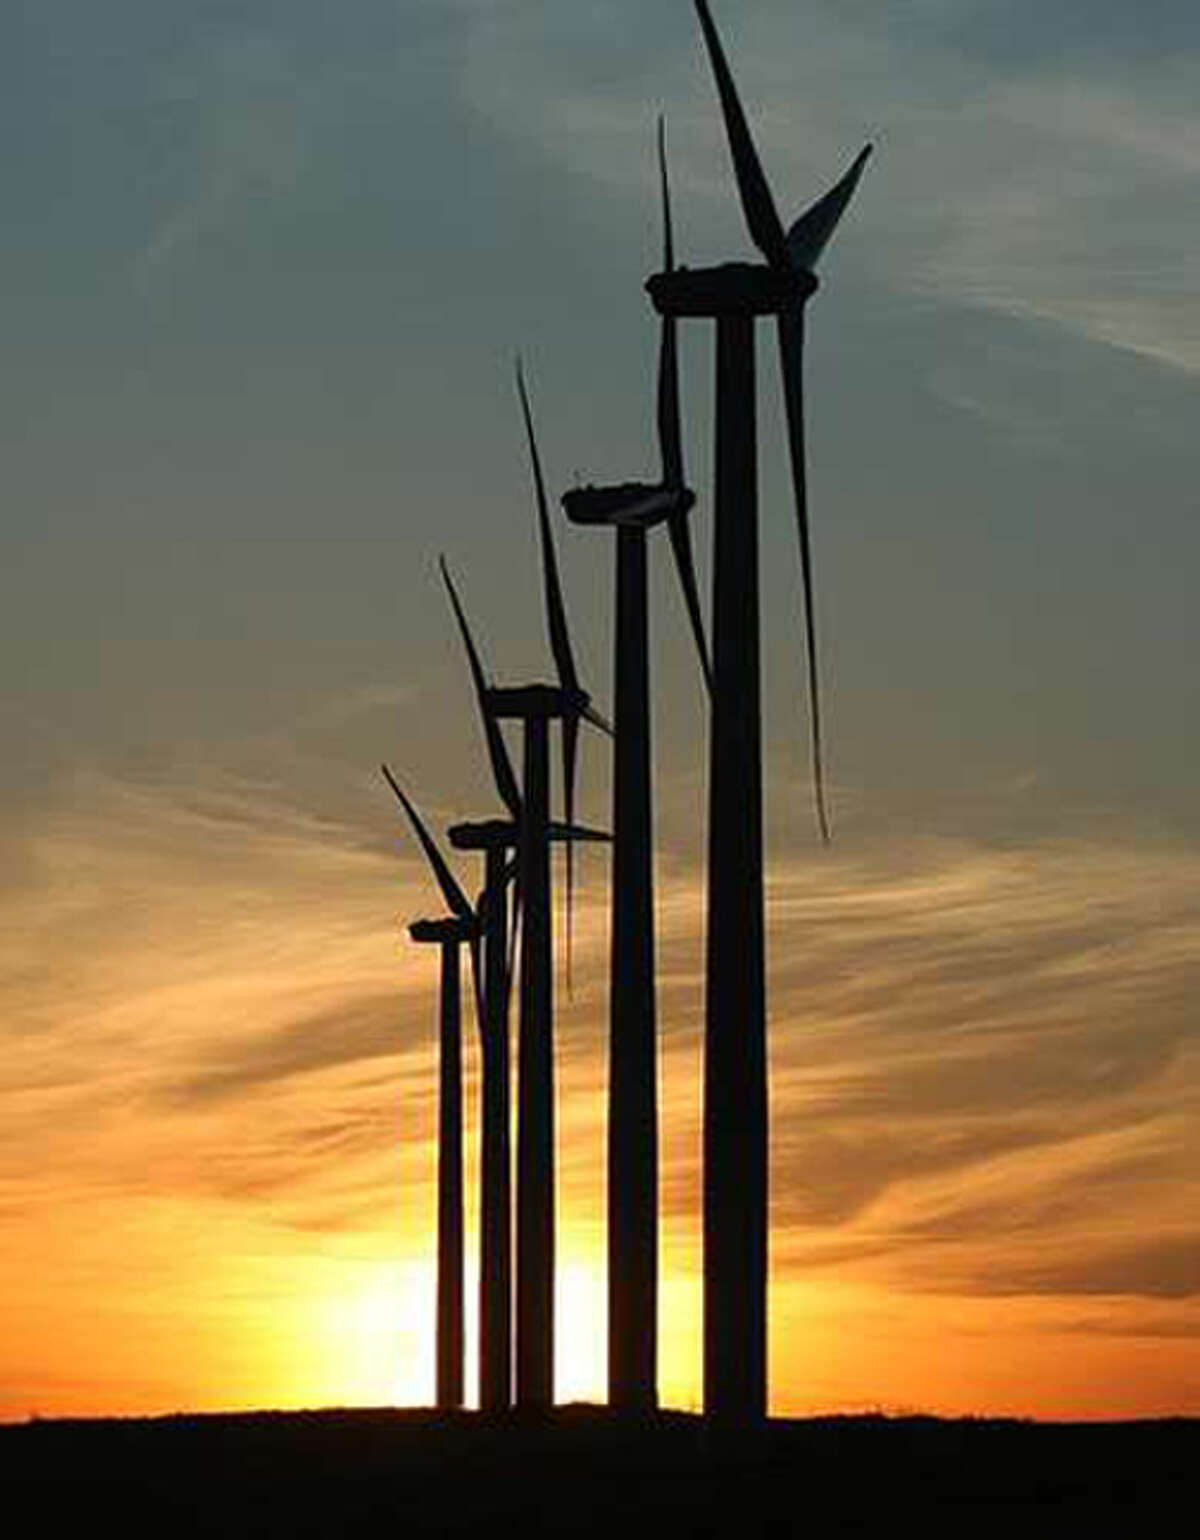 Wind turbines, similar to those shown in this photo, are expected to change the Hale County landscape as plans are to have 850-900 turbines in the county within five years. Each turbine will cost about $2 million. Early phase construction is expected to begin late this year.